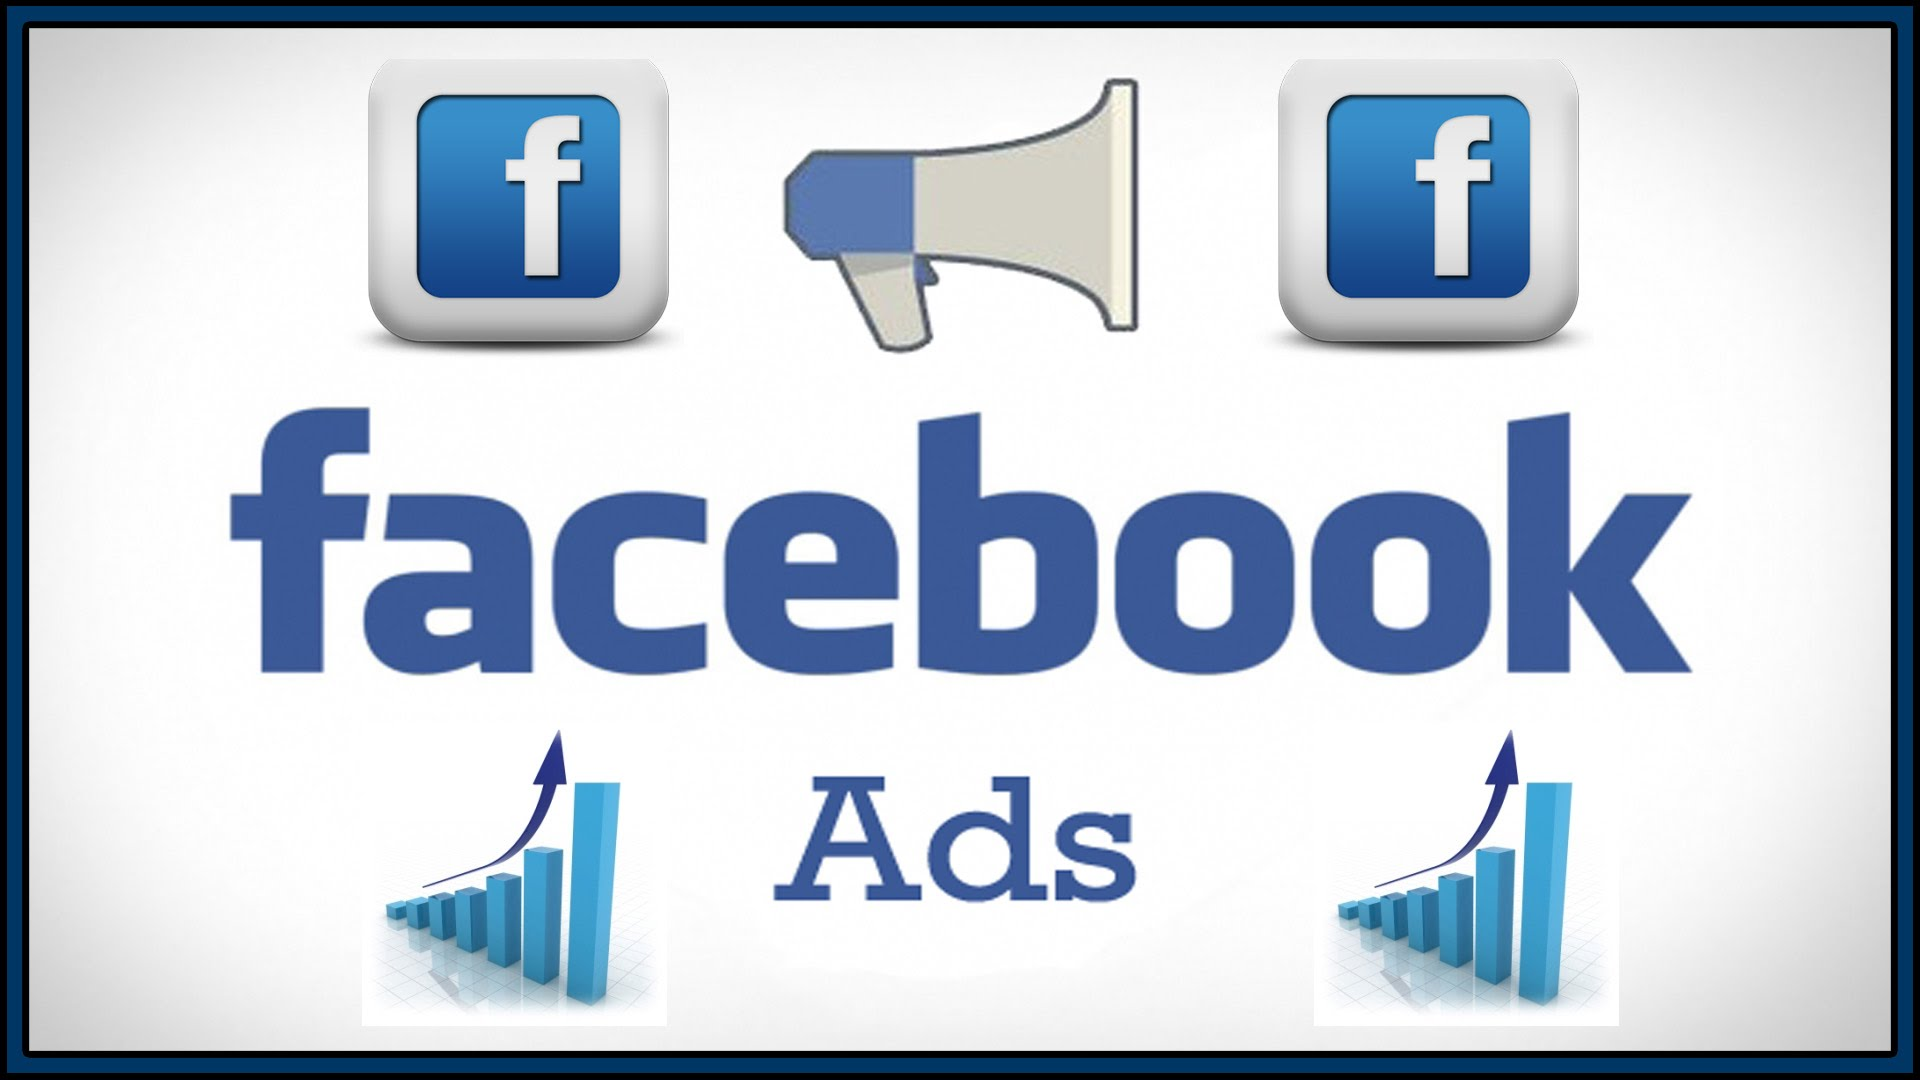 Setup And Manage Your Facebook Ads